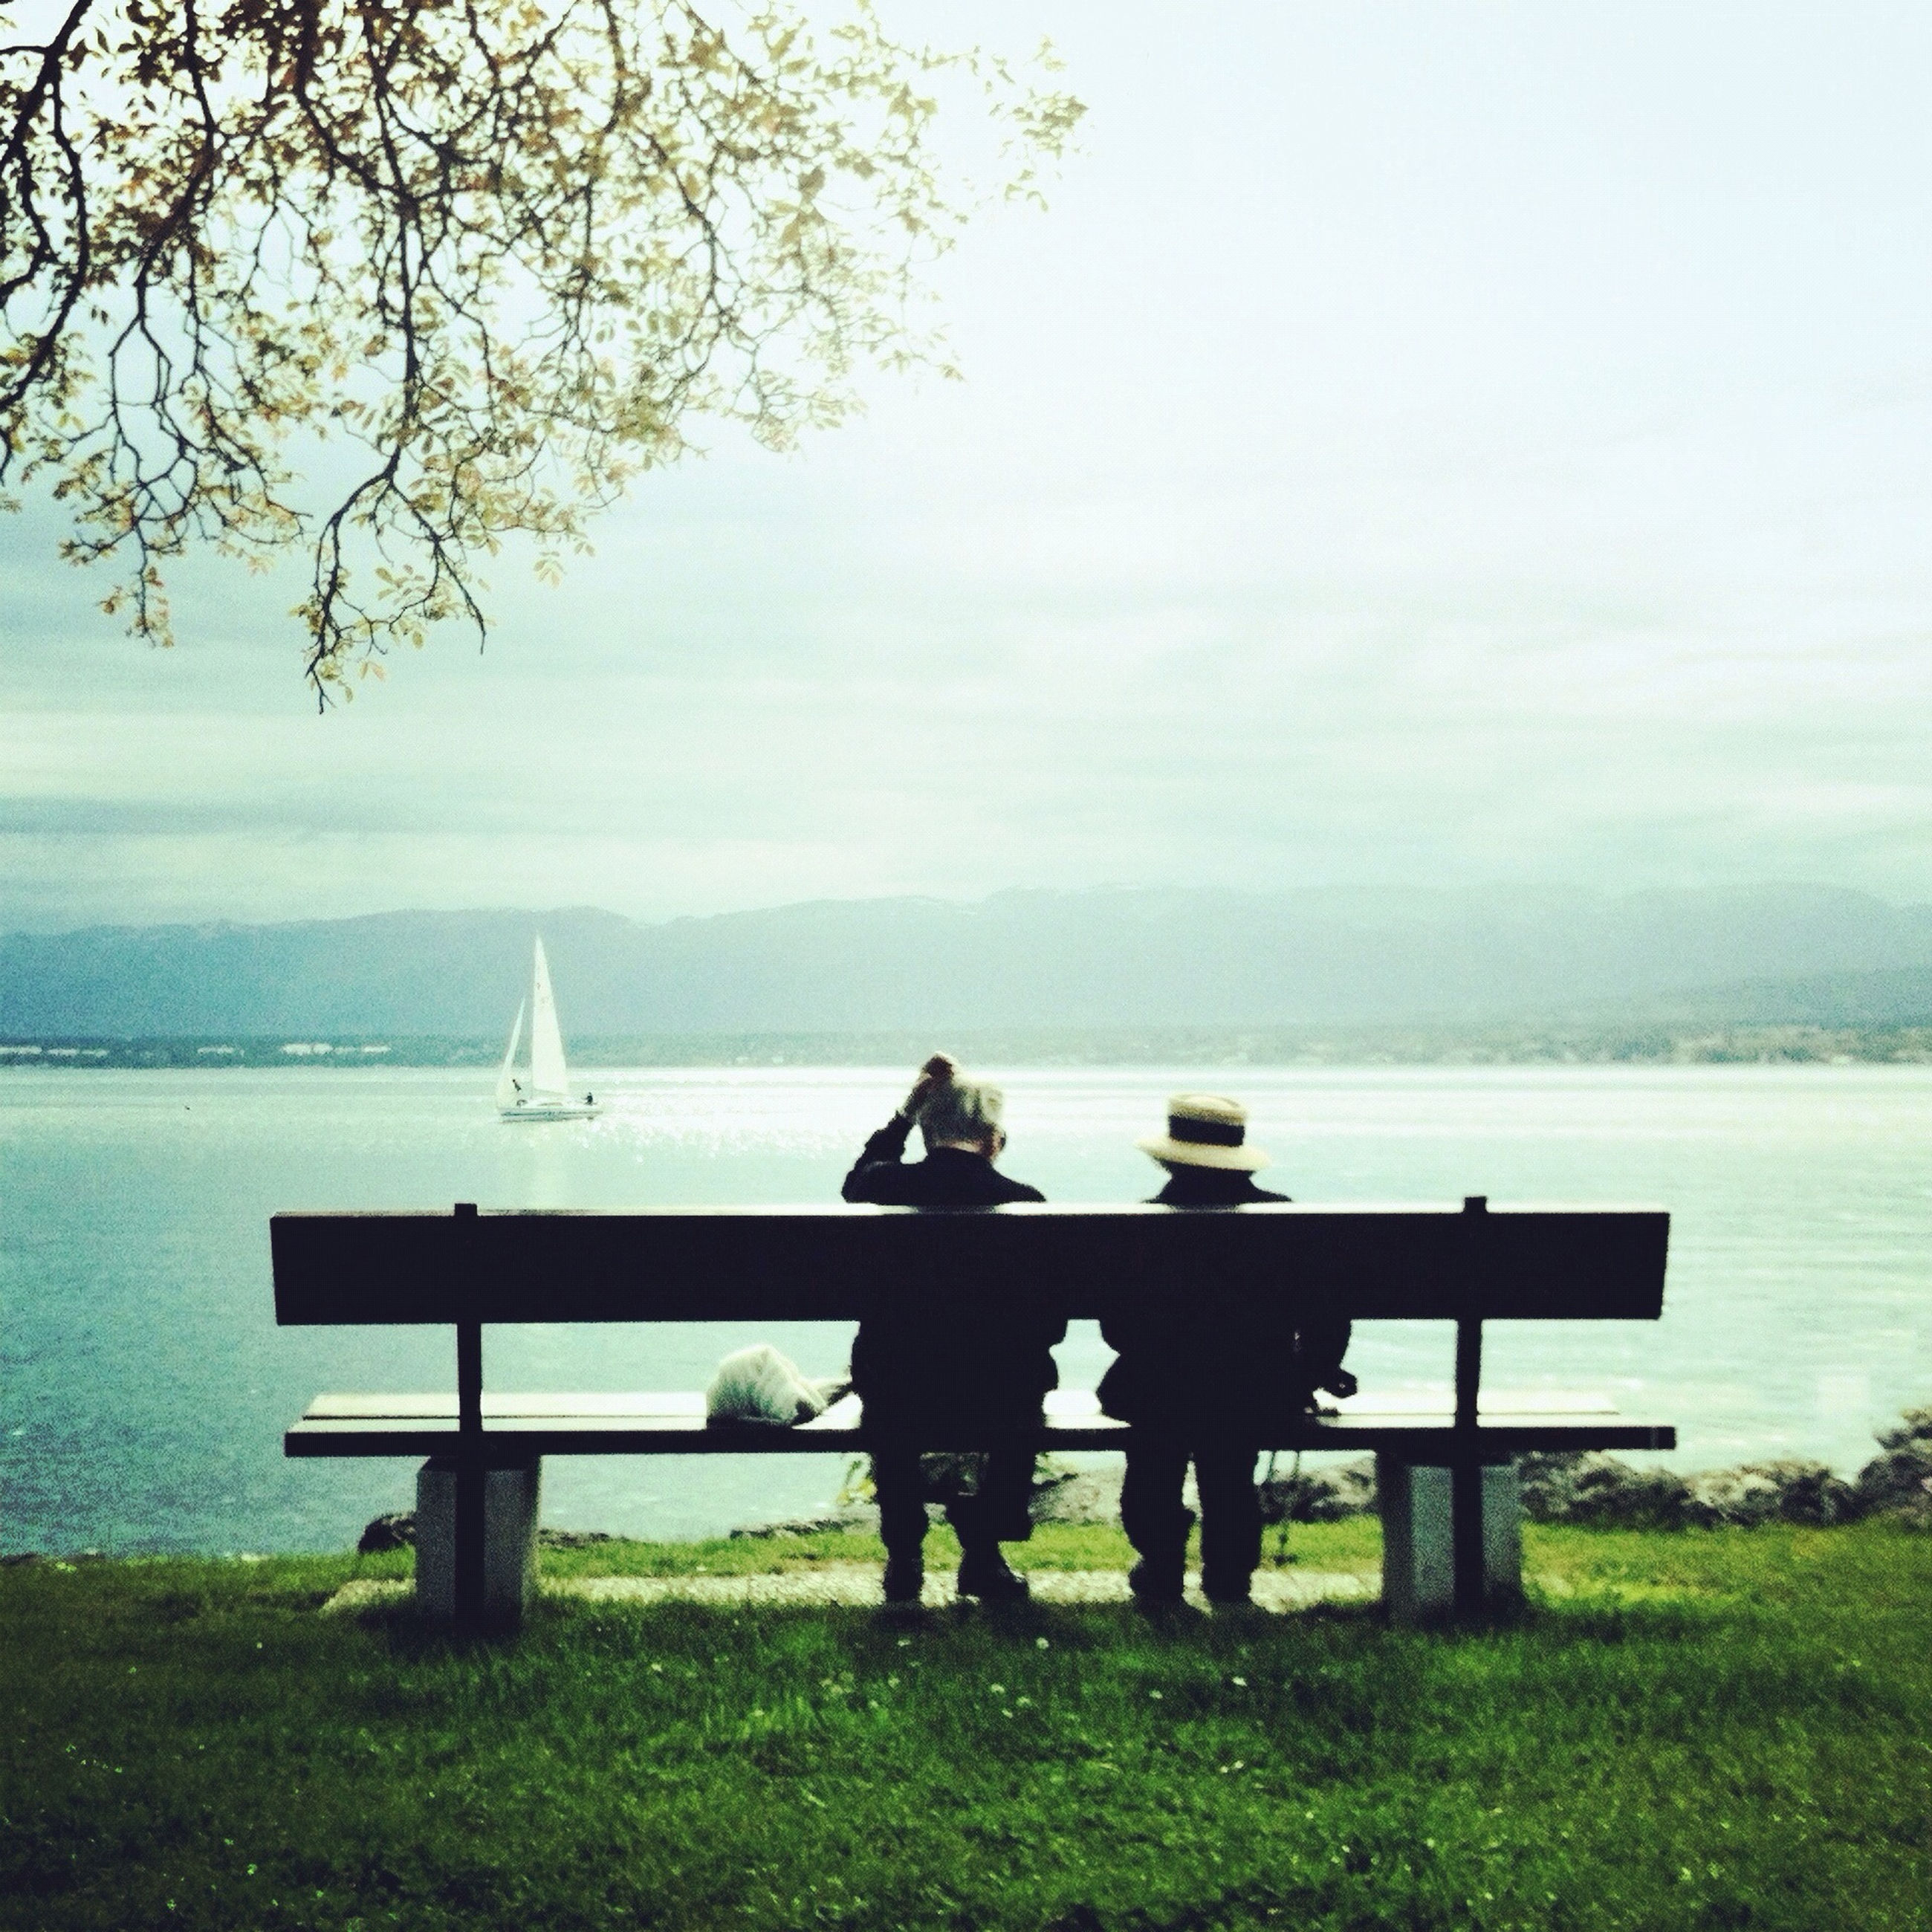 water, lifestyles, rear view, leisure activity, men, togetherness, bench, person, full length, tranquility, tranquil scene, sea, sitting, sky, nature, lake, standing, relaxation